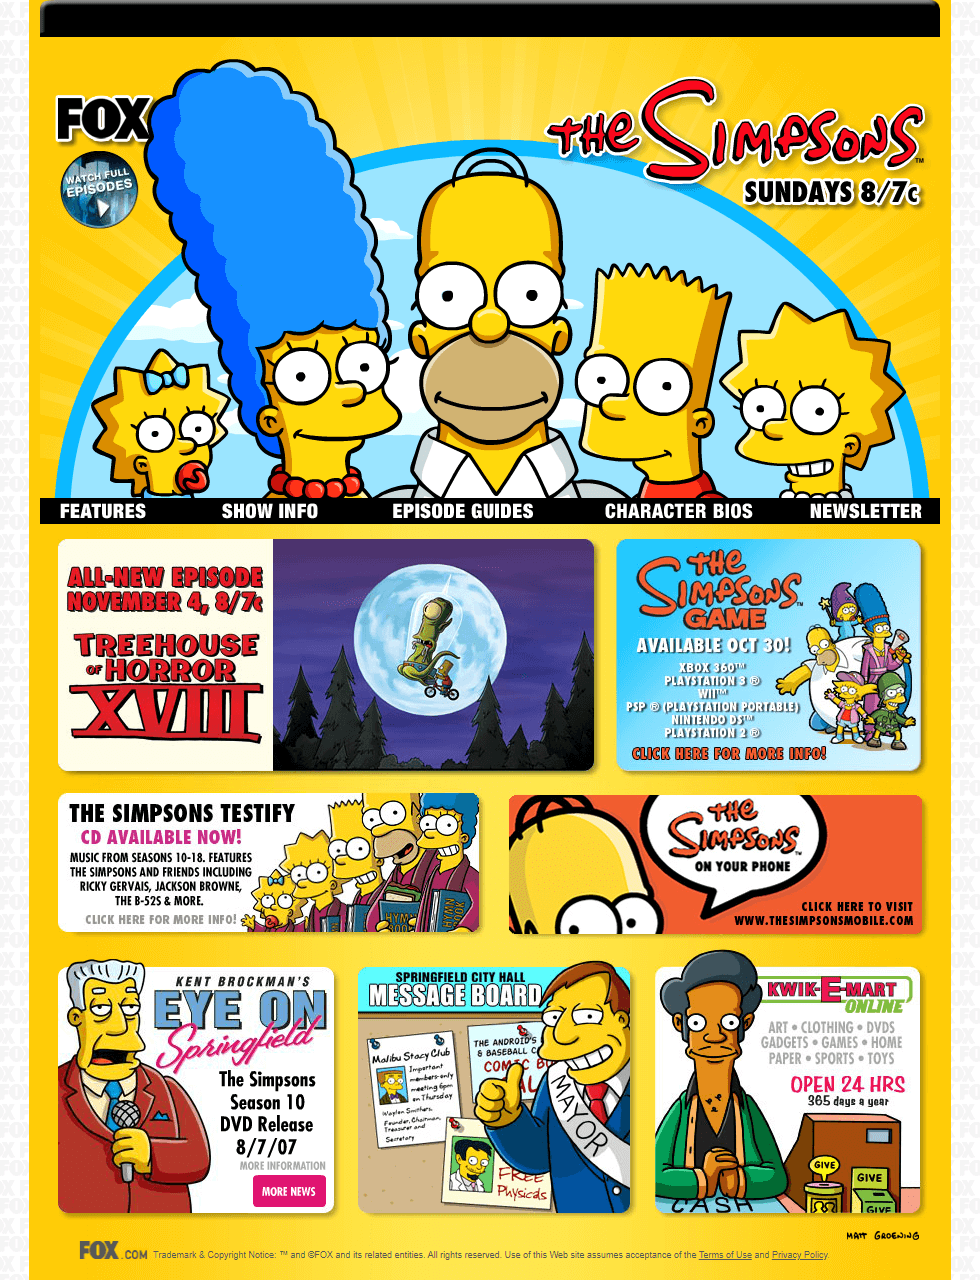 The Simpsons in 2007